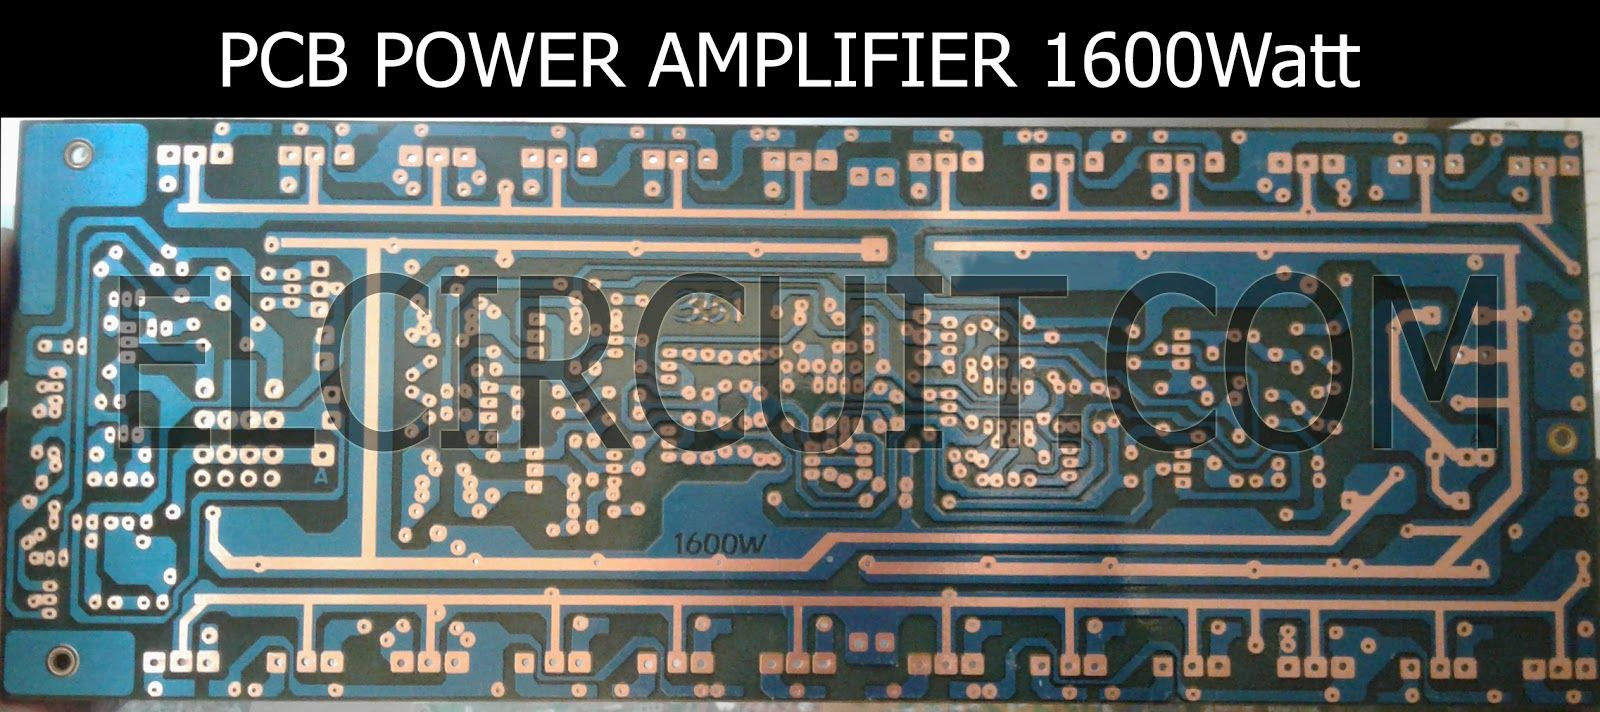 1600w High Power Amplifier Circuit Complete Pcb Layout In 2018 Electronic Design Software